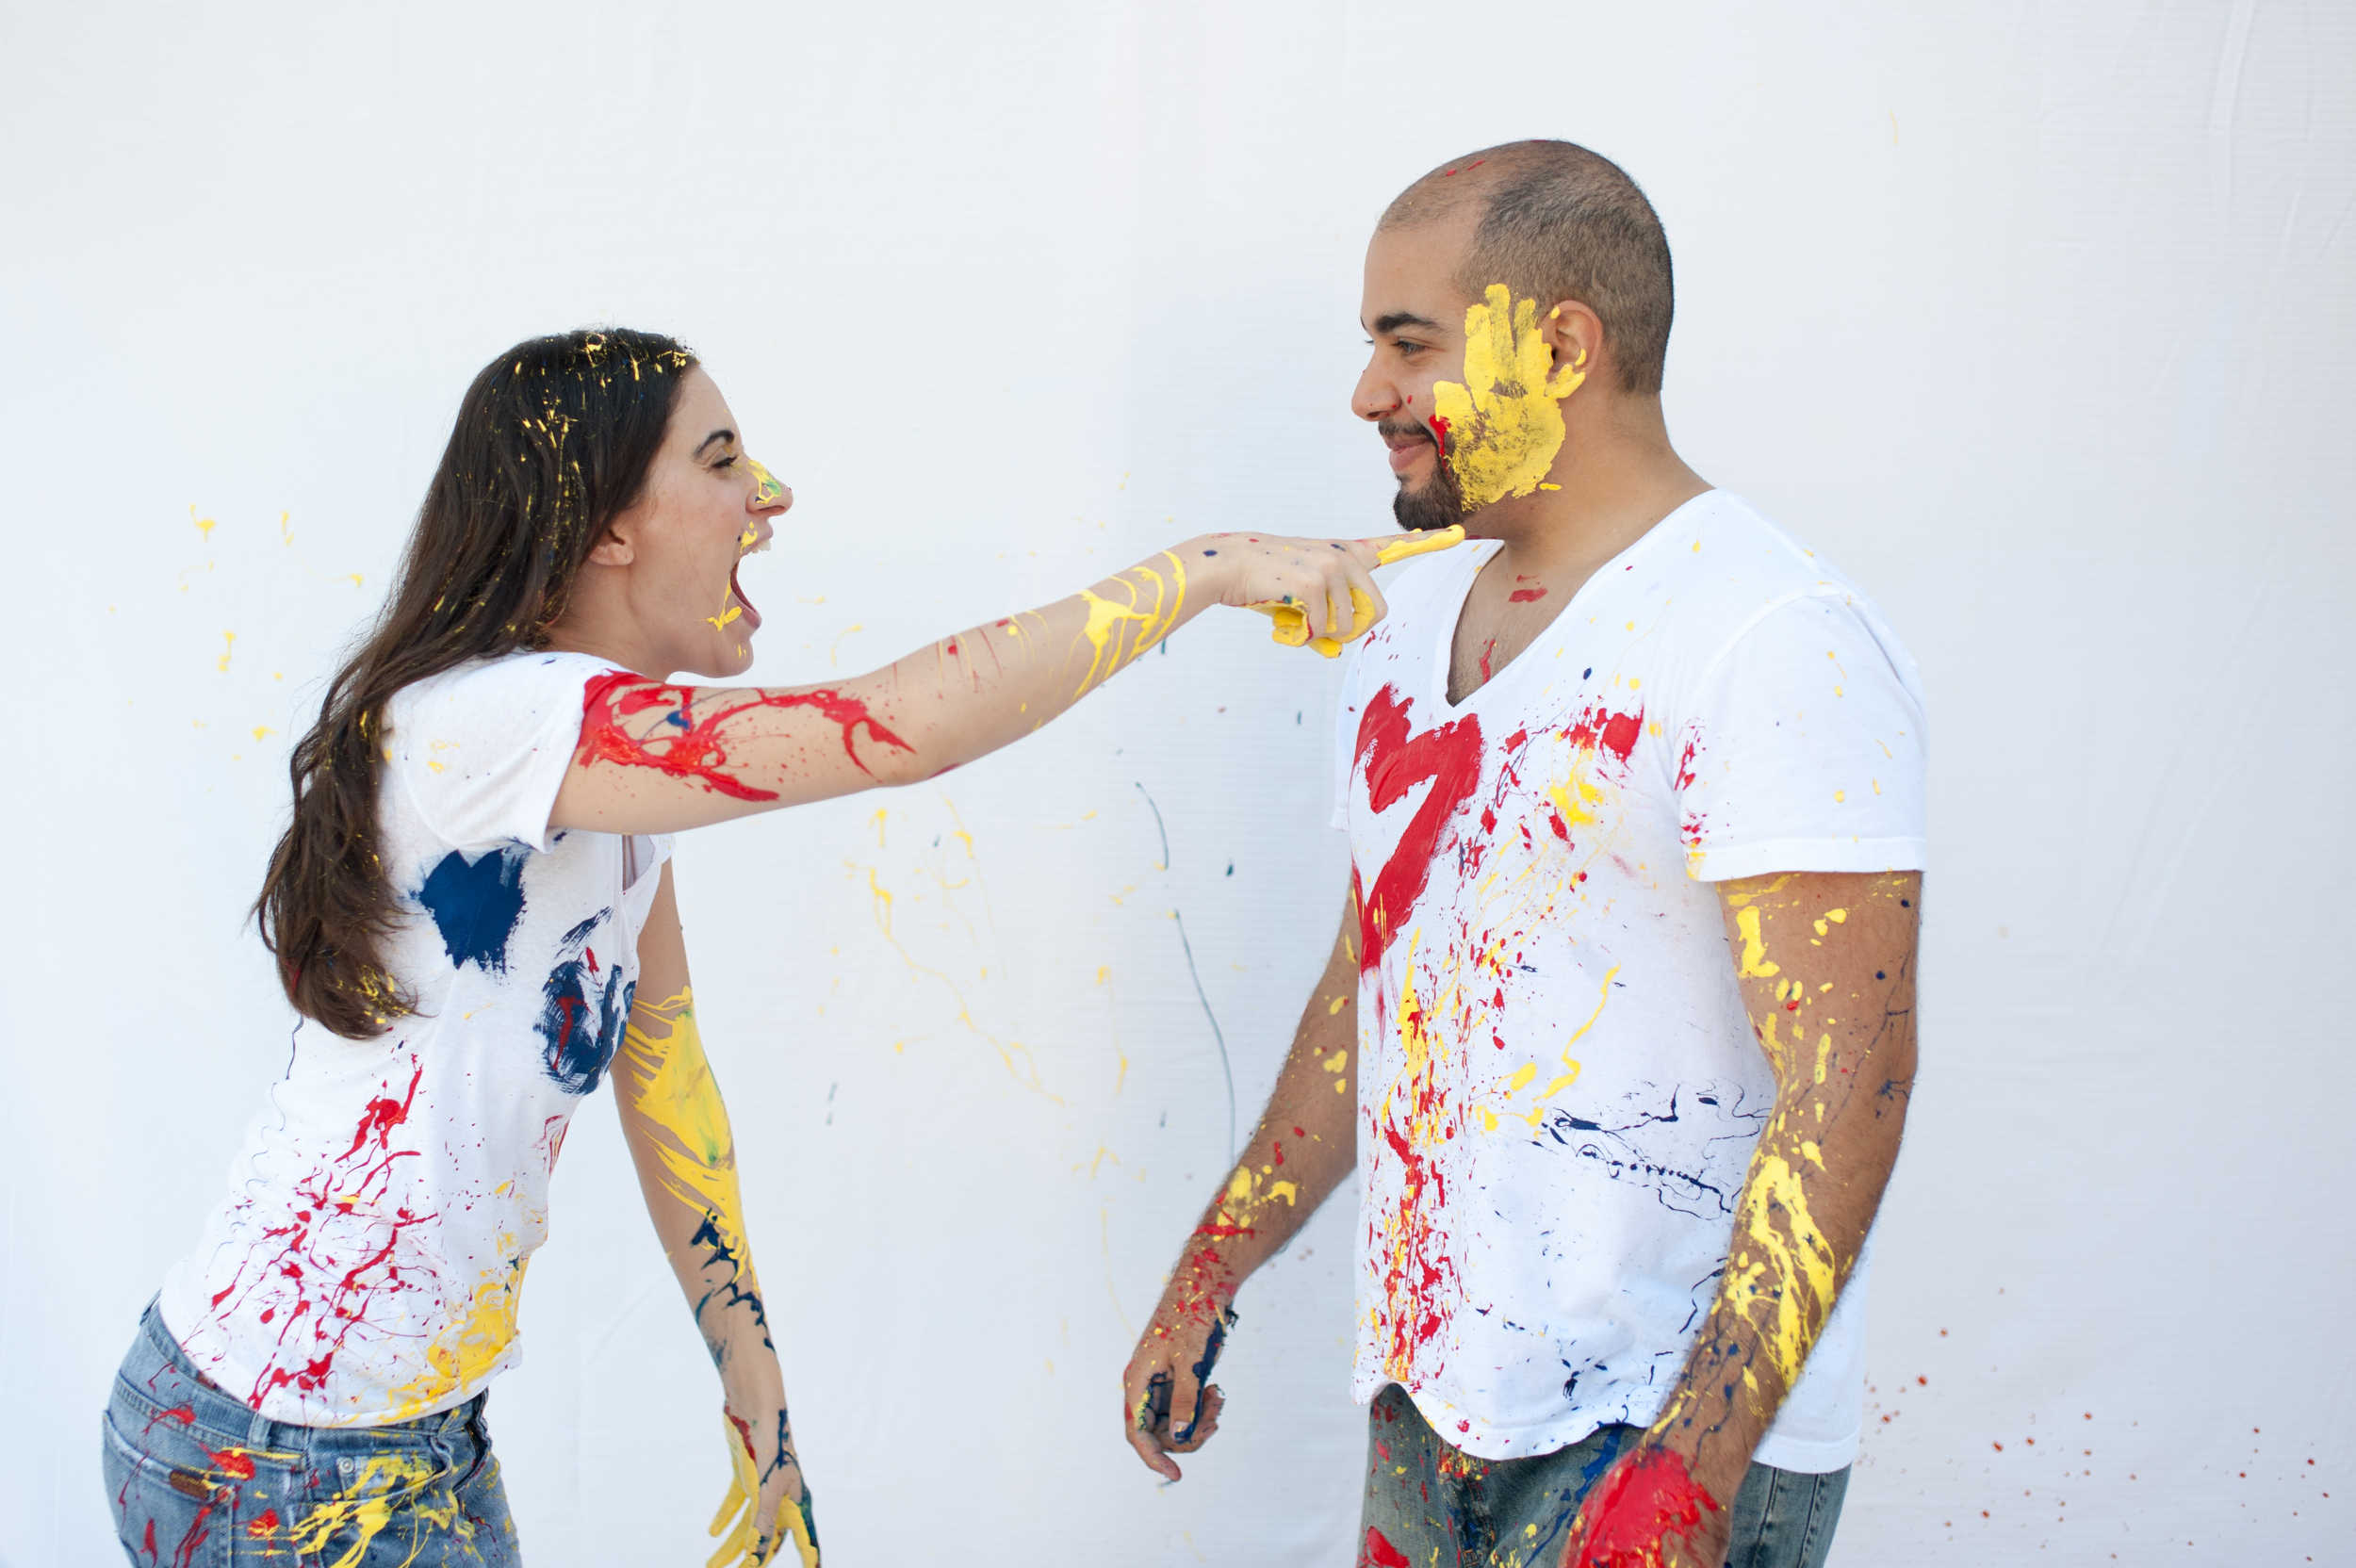 Paint War Engagement Session by Mantas Kubilinskas-6.jpg